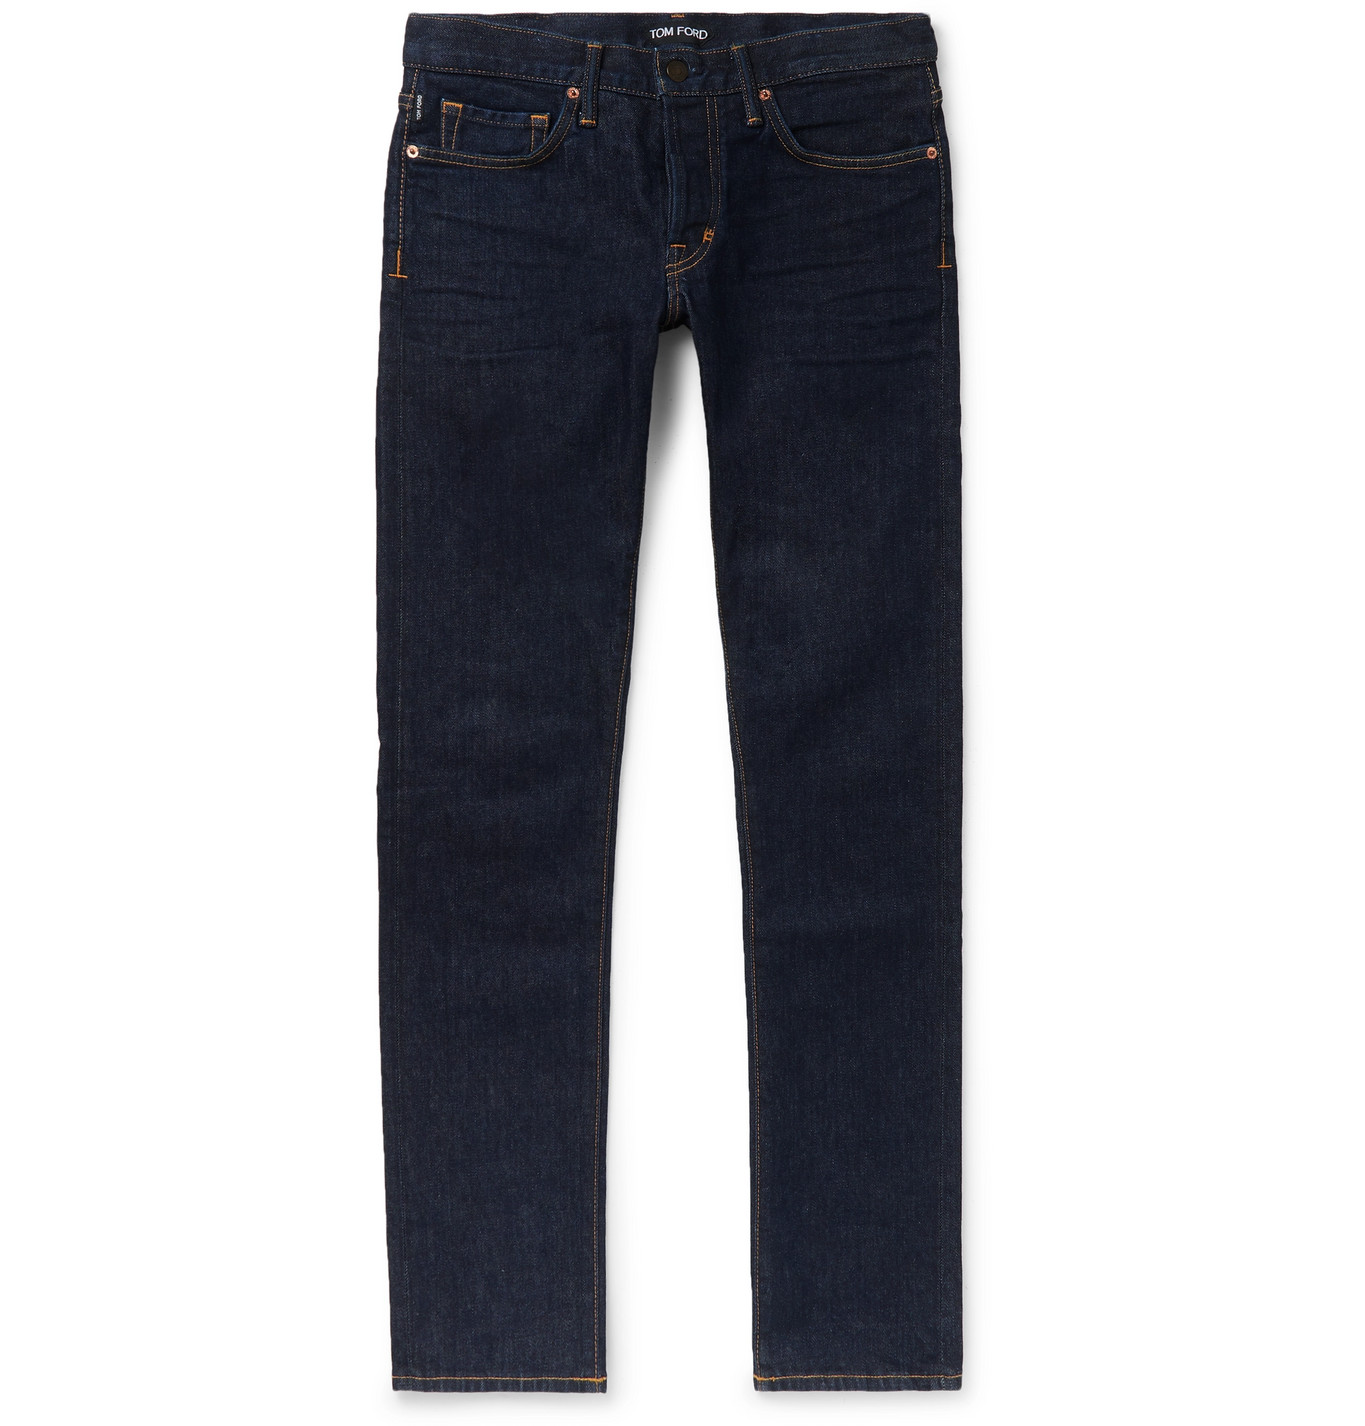 TOM FORD - Slim-Fit Stretch-Denim Jeans - Men - Blue